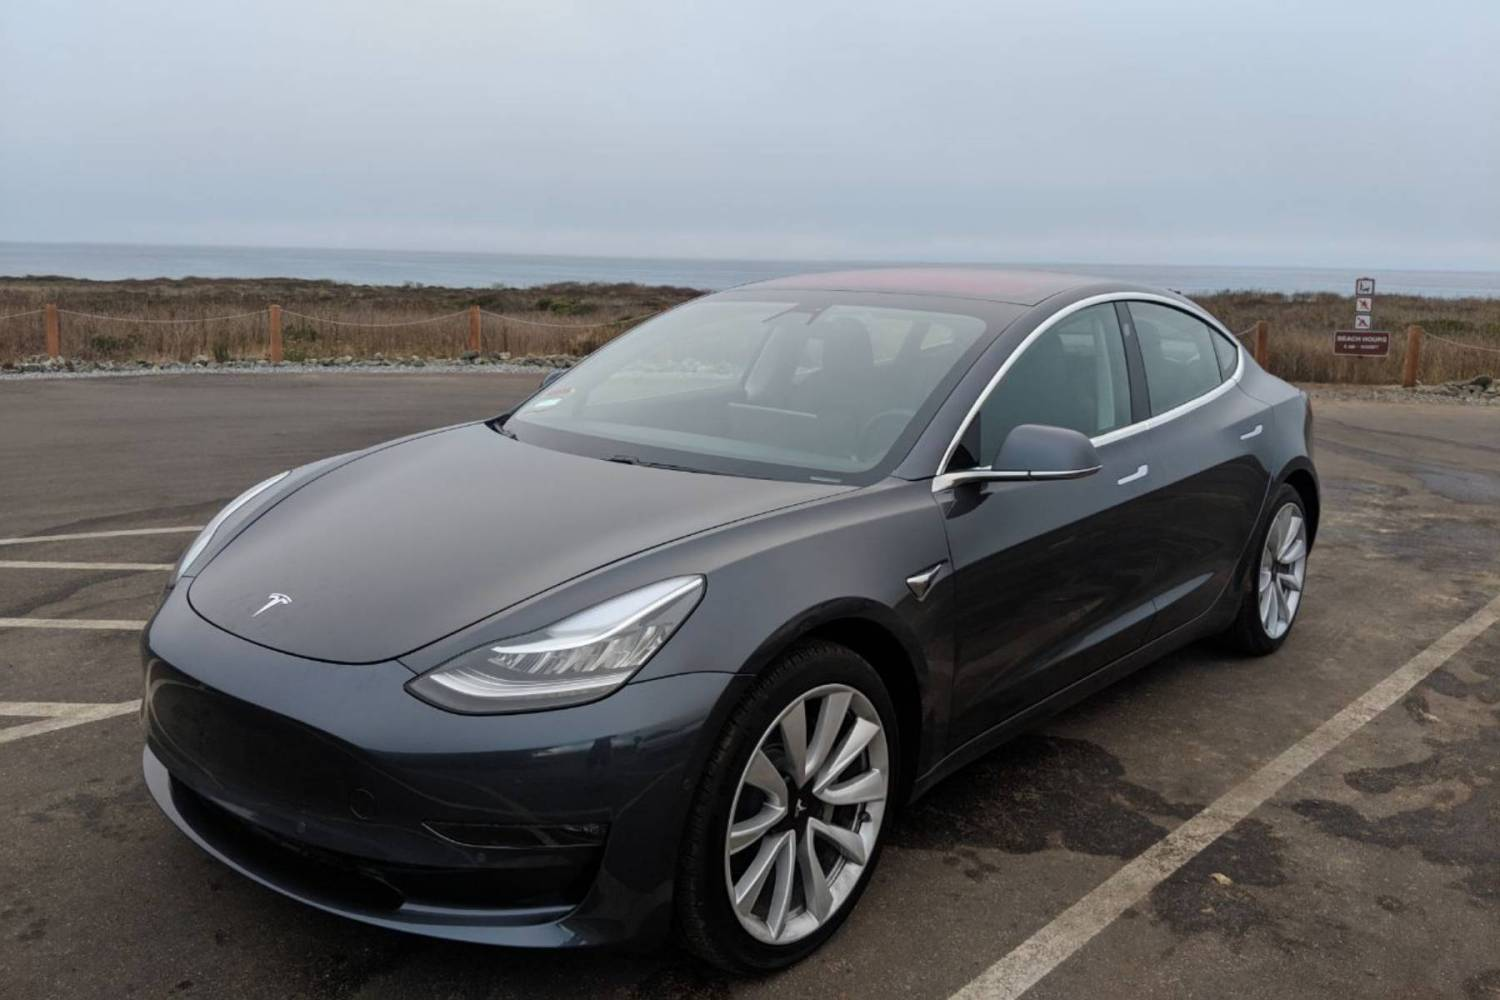 Tesla Model 3 long-term review: life with Elon Musk's make-or-break